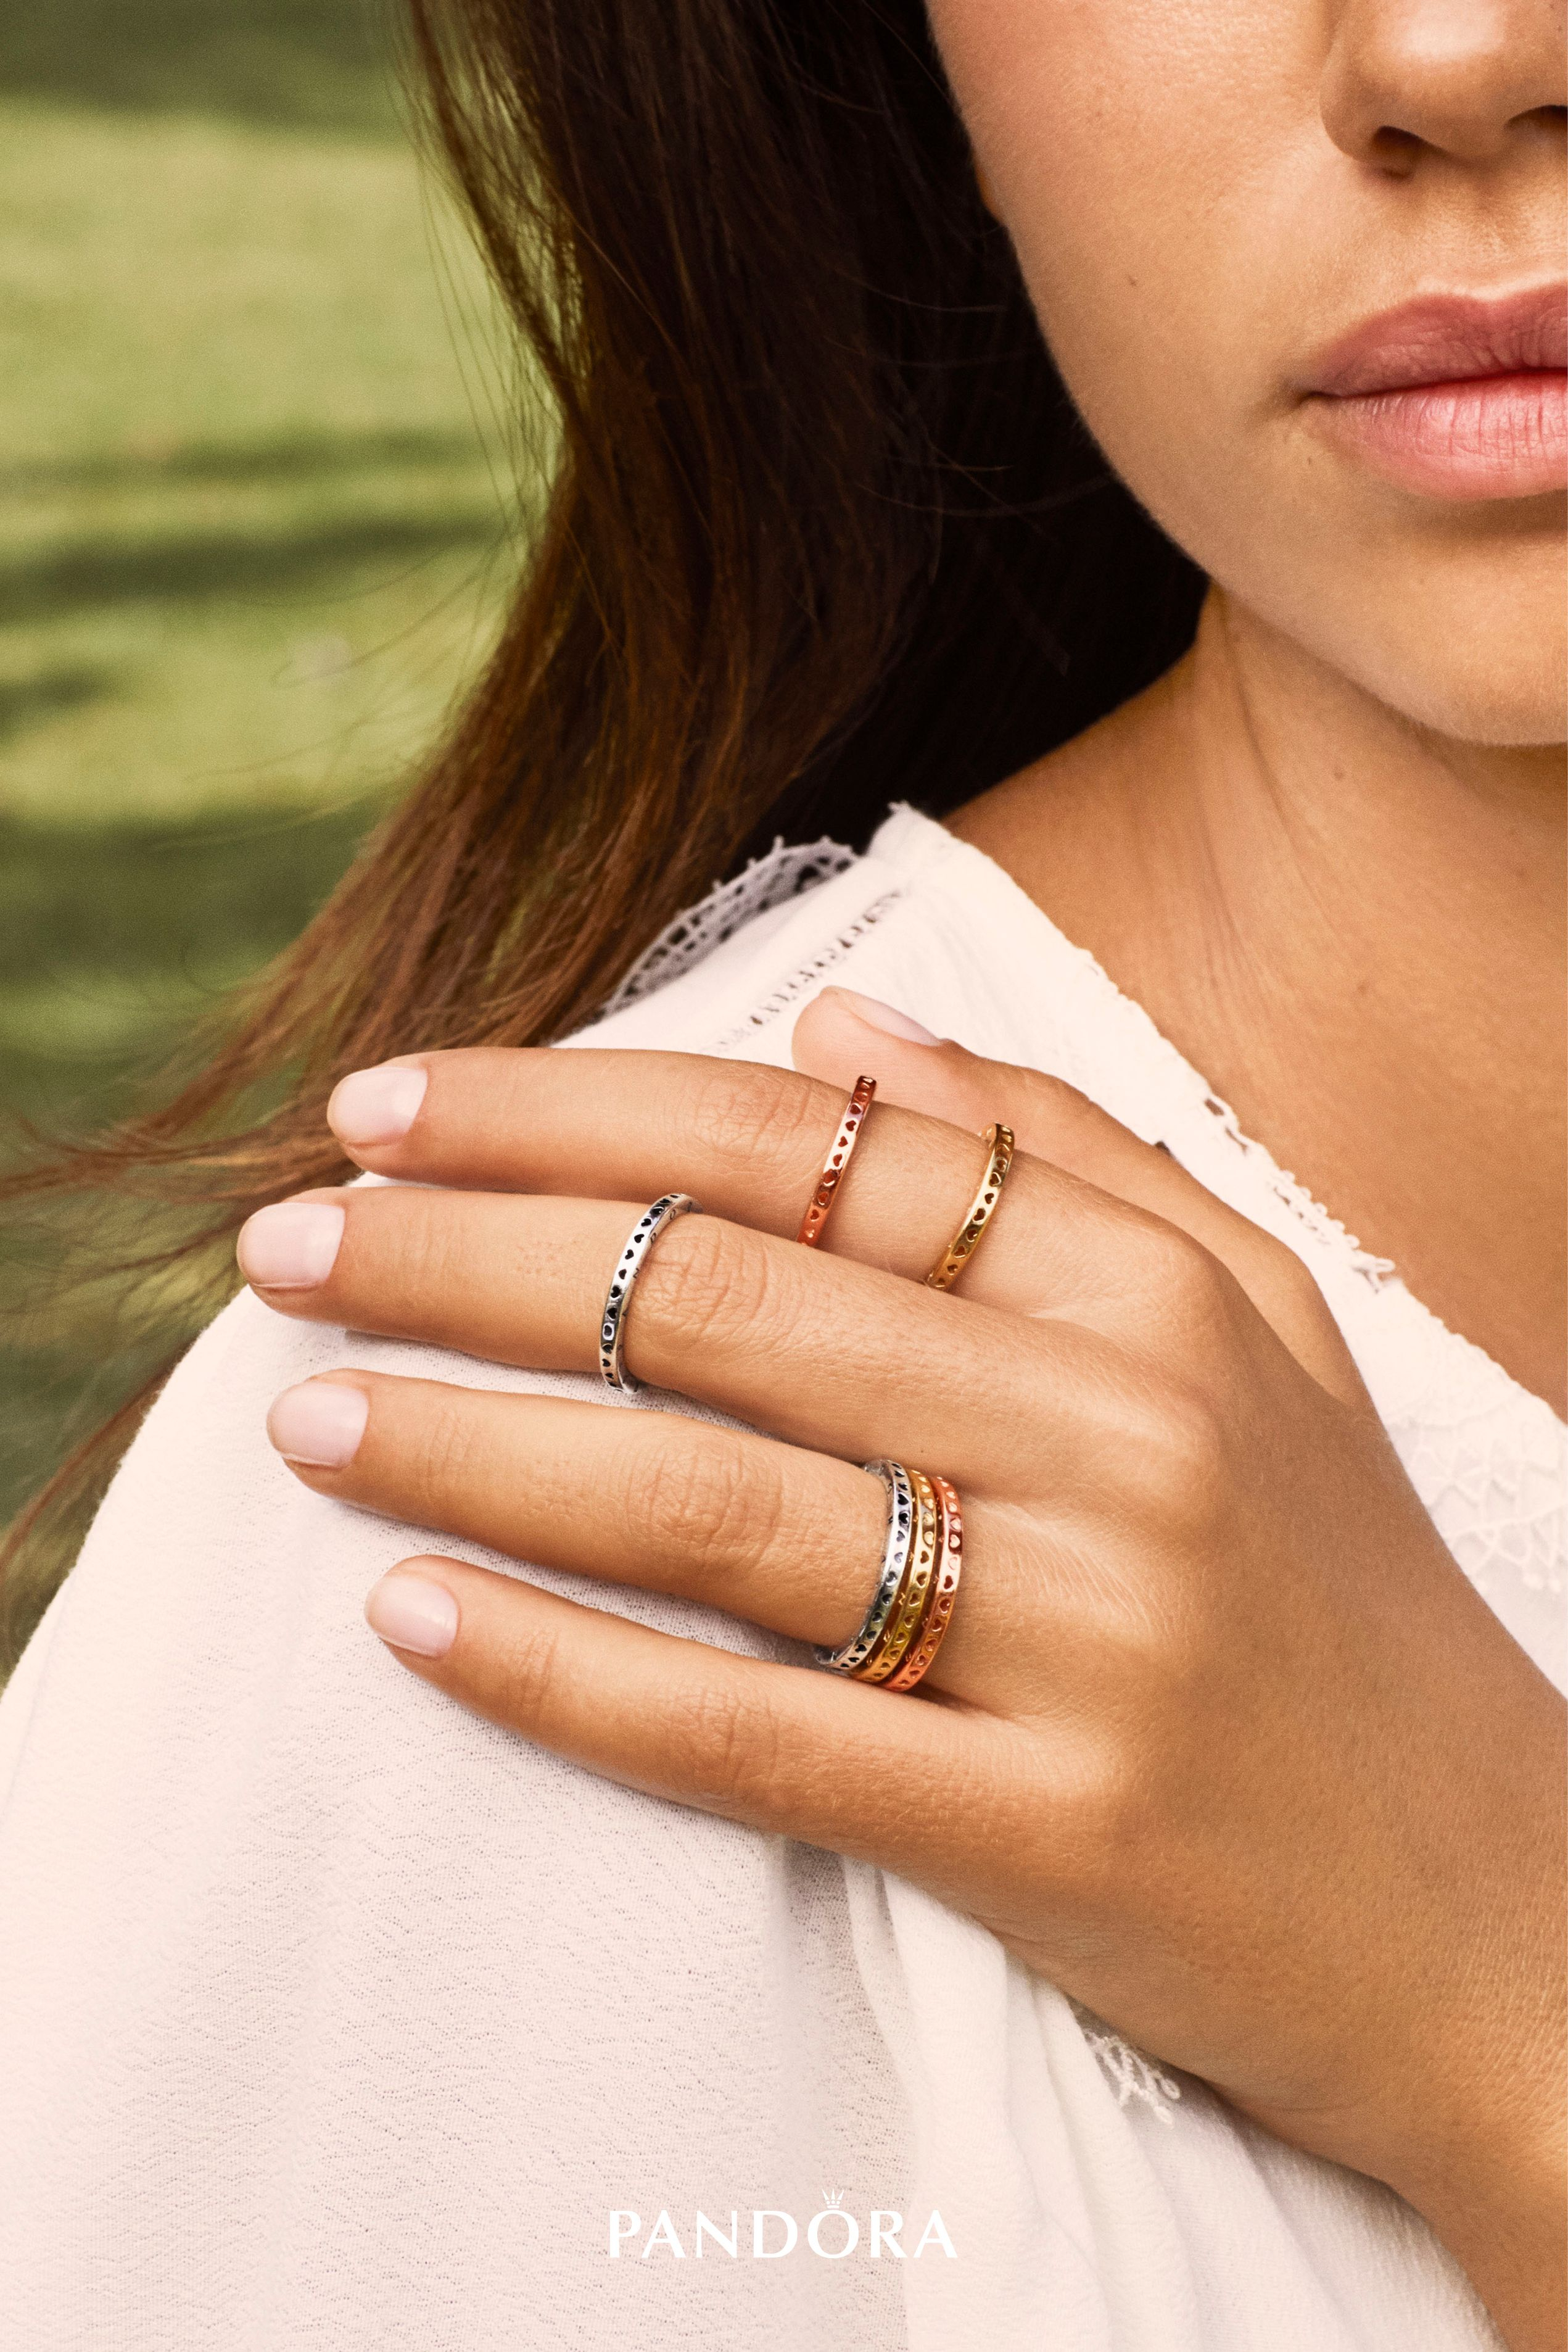 Your Style Is Your Signature. Curate It Or Complete It With The New Within 2017 Hearts & Pandora Logo Rings (Gallery 15 of 25)